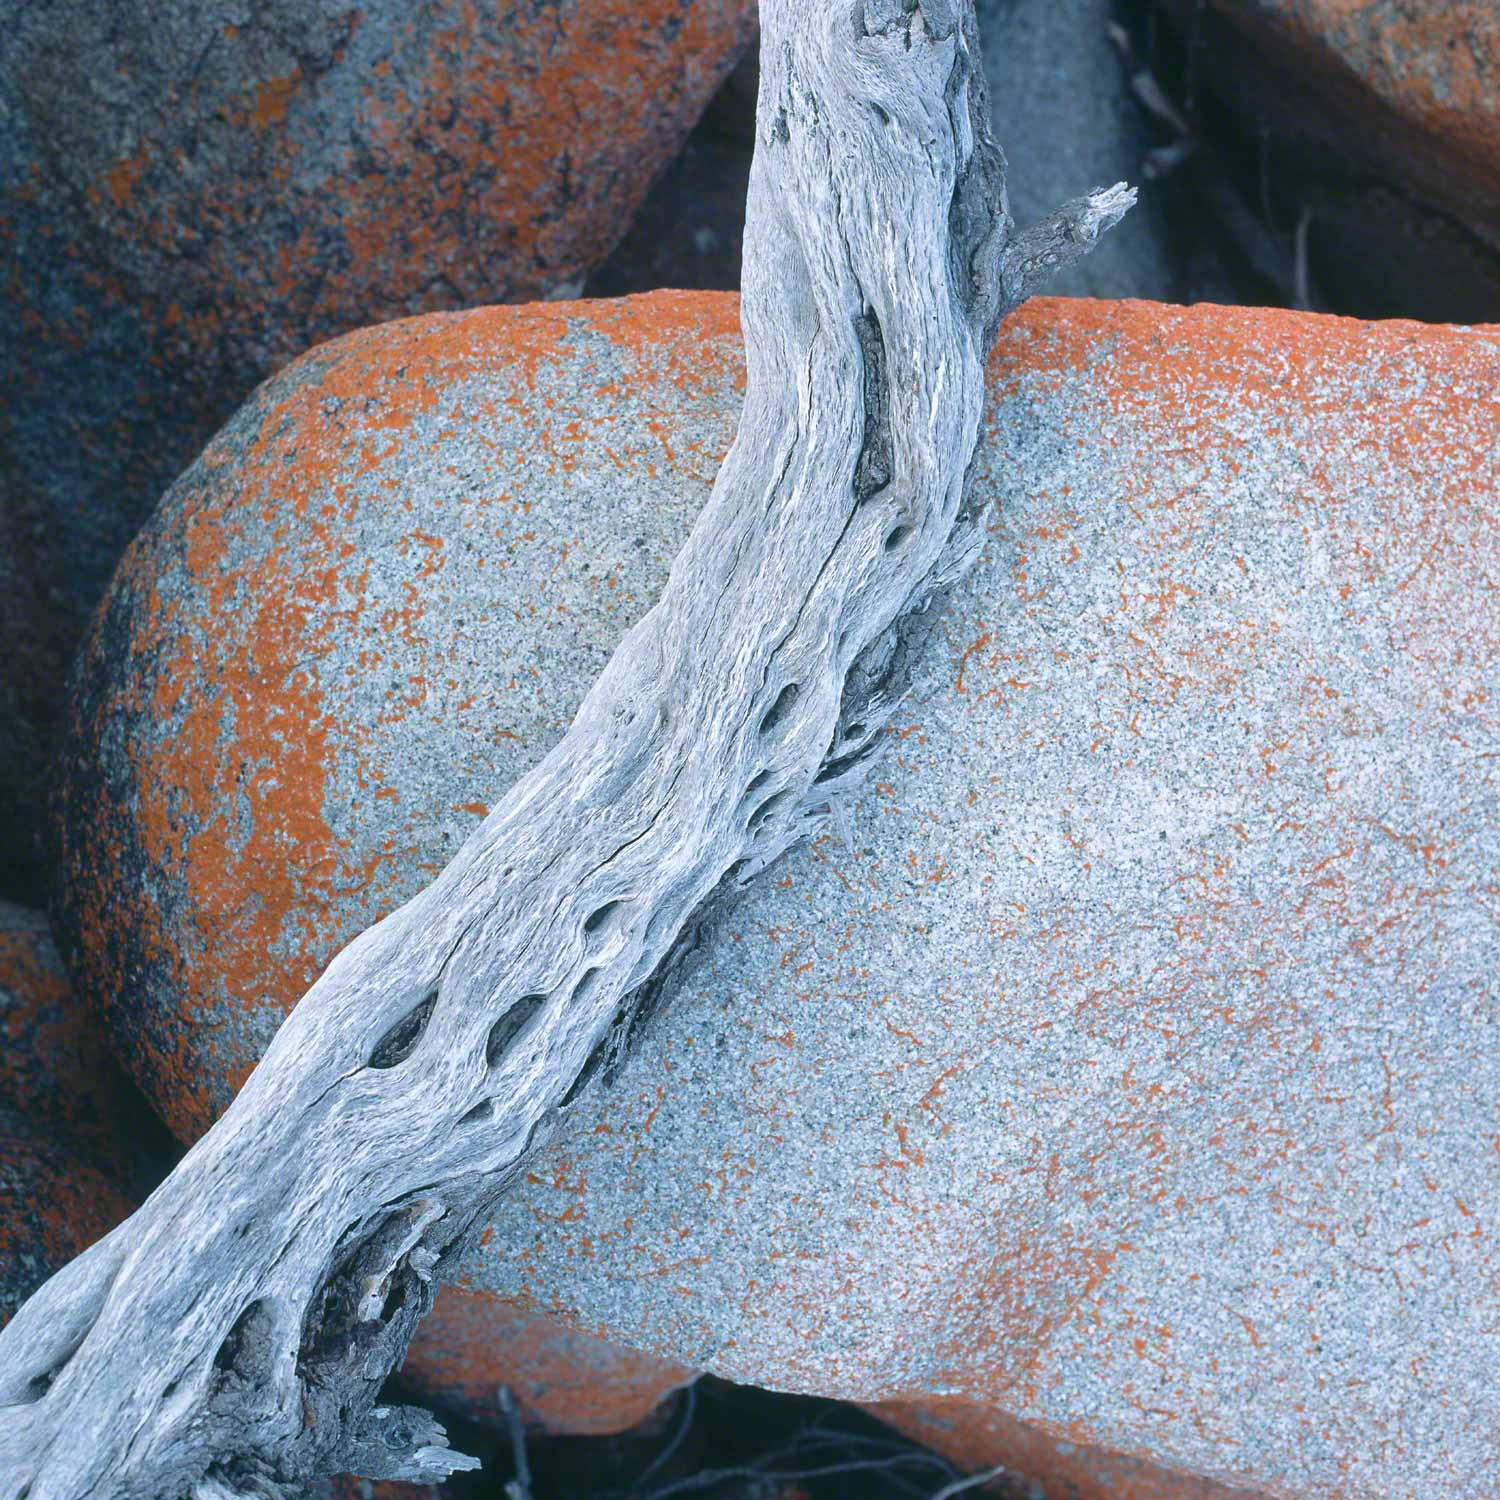 Warren-Hinder-LR-Granite-and-Driftwood.jpg